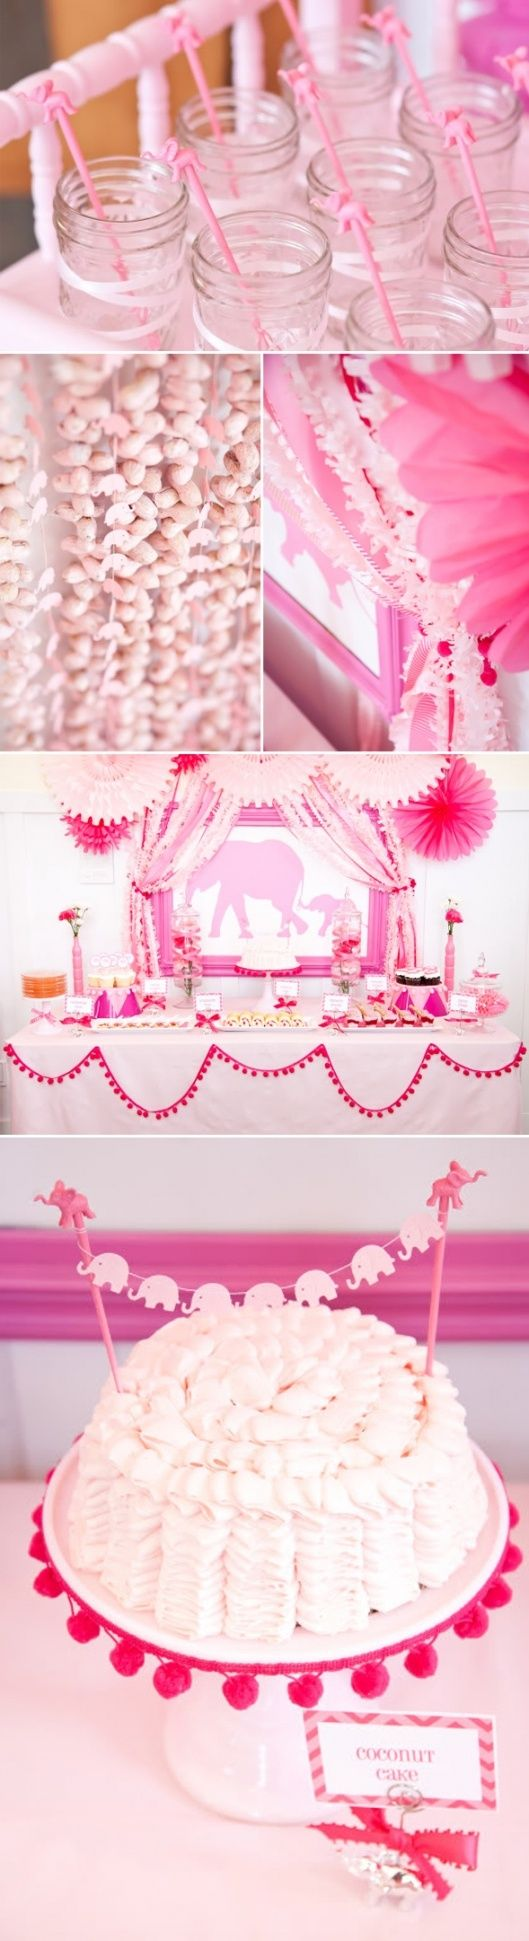 Pink Elephant Baby Shower via Kara's Party Ideas karaspartyideas.com #elephant #themed #party #ideas #idea #pink #baby #shower